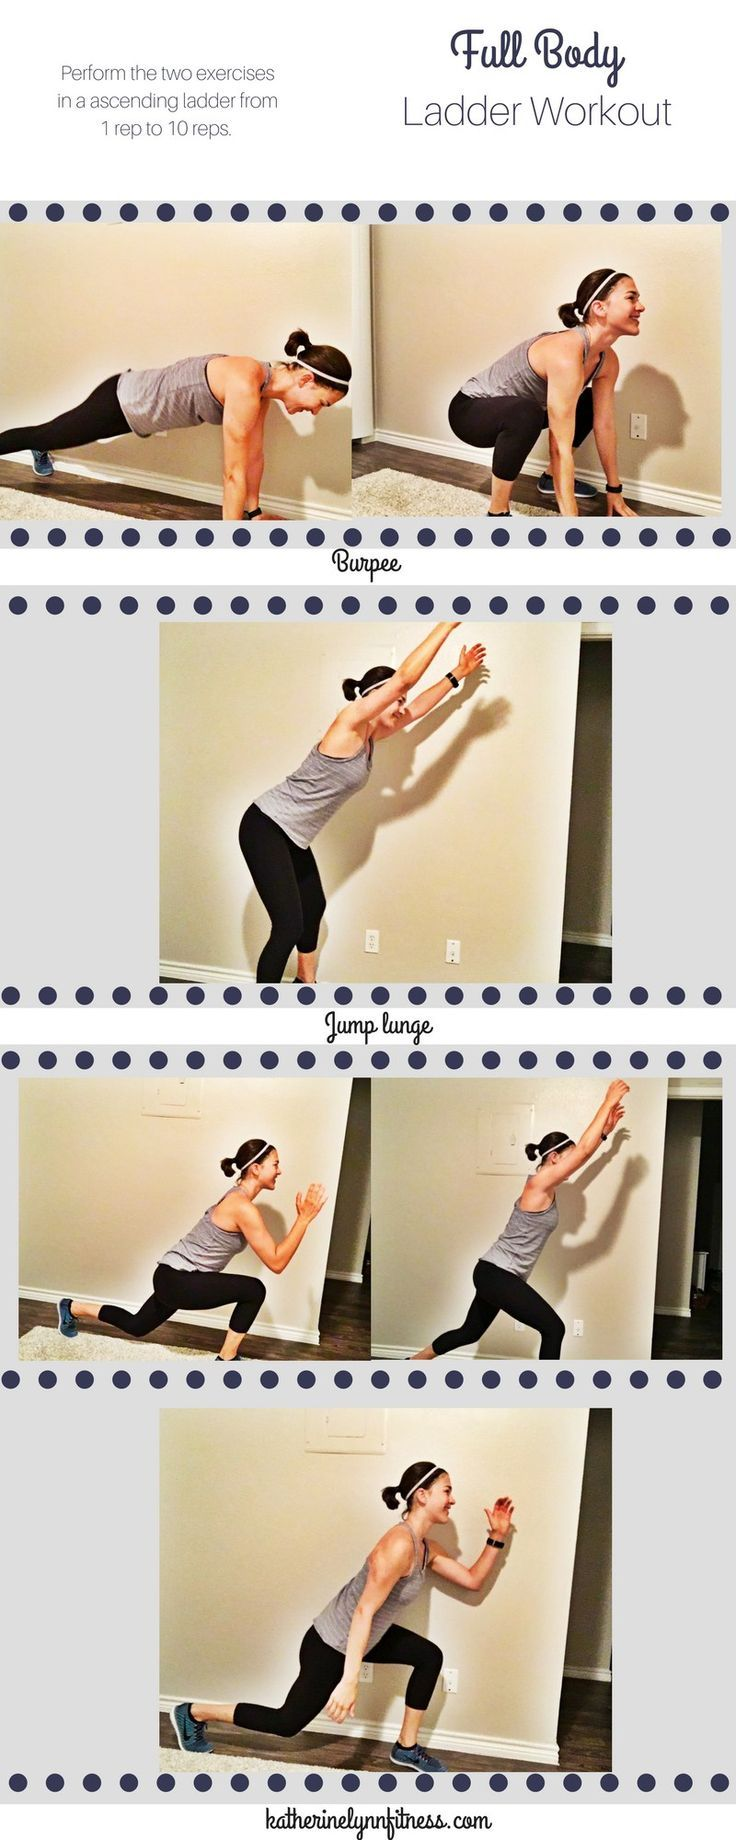 10 minute, full body ladder workout